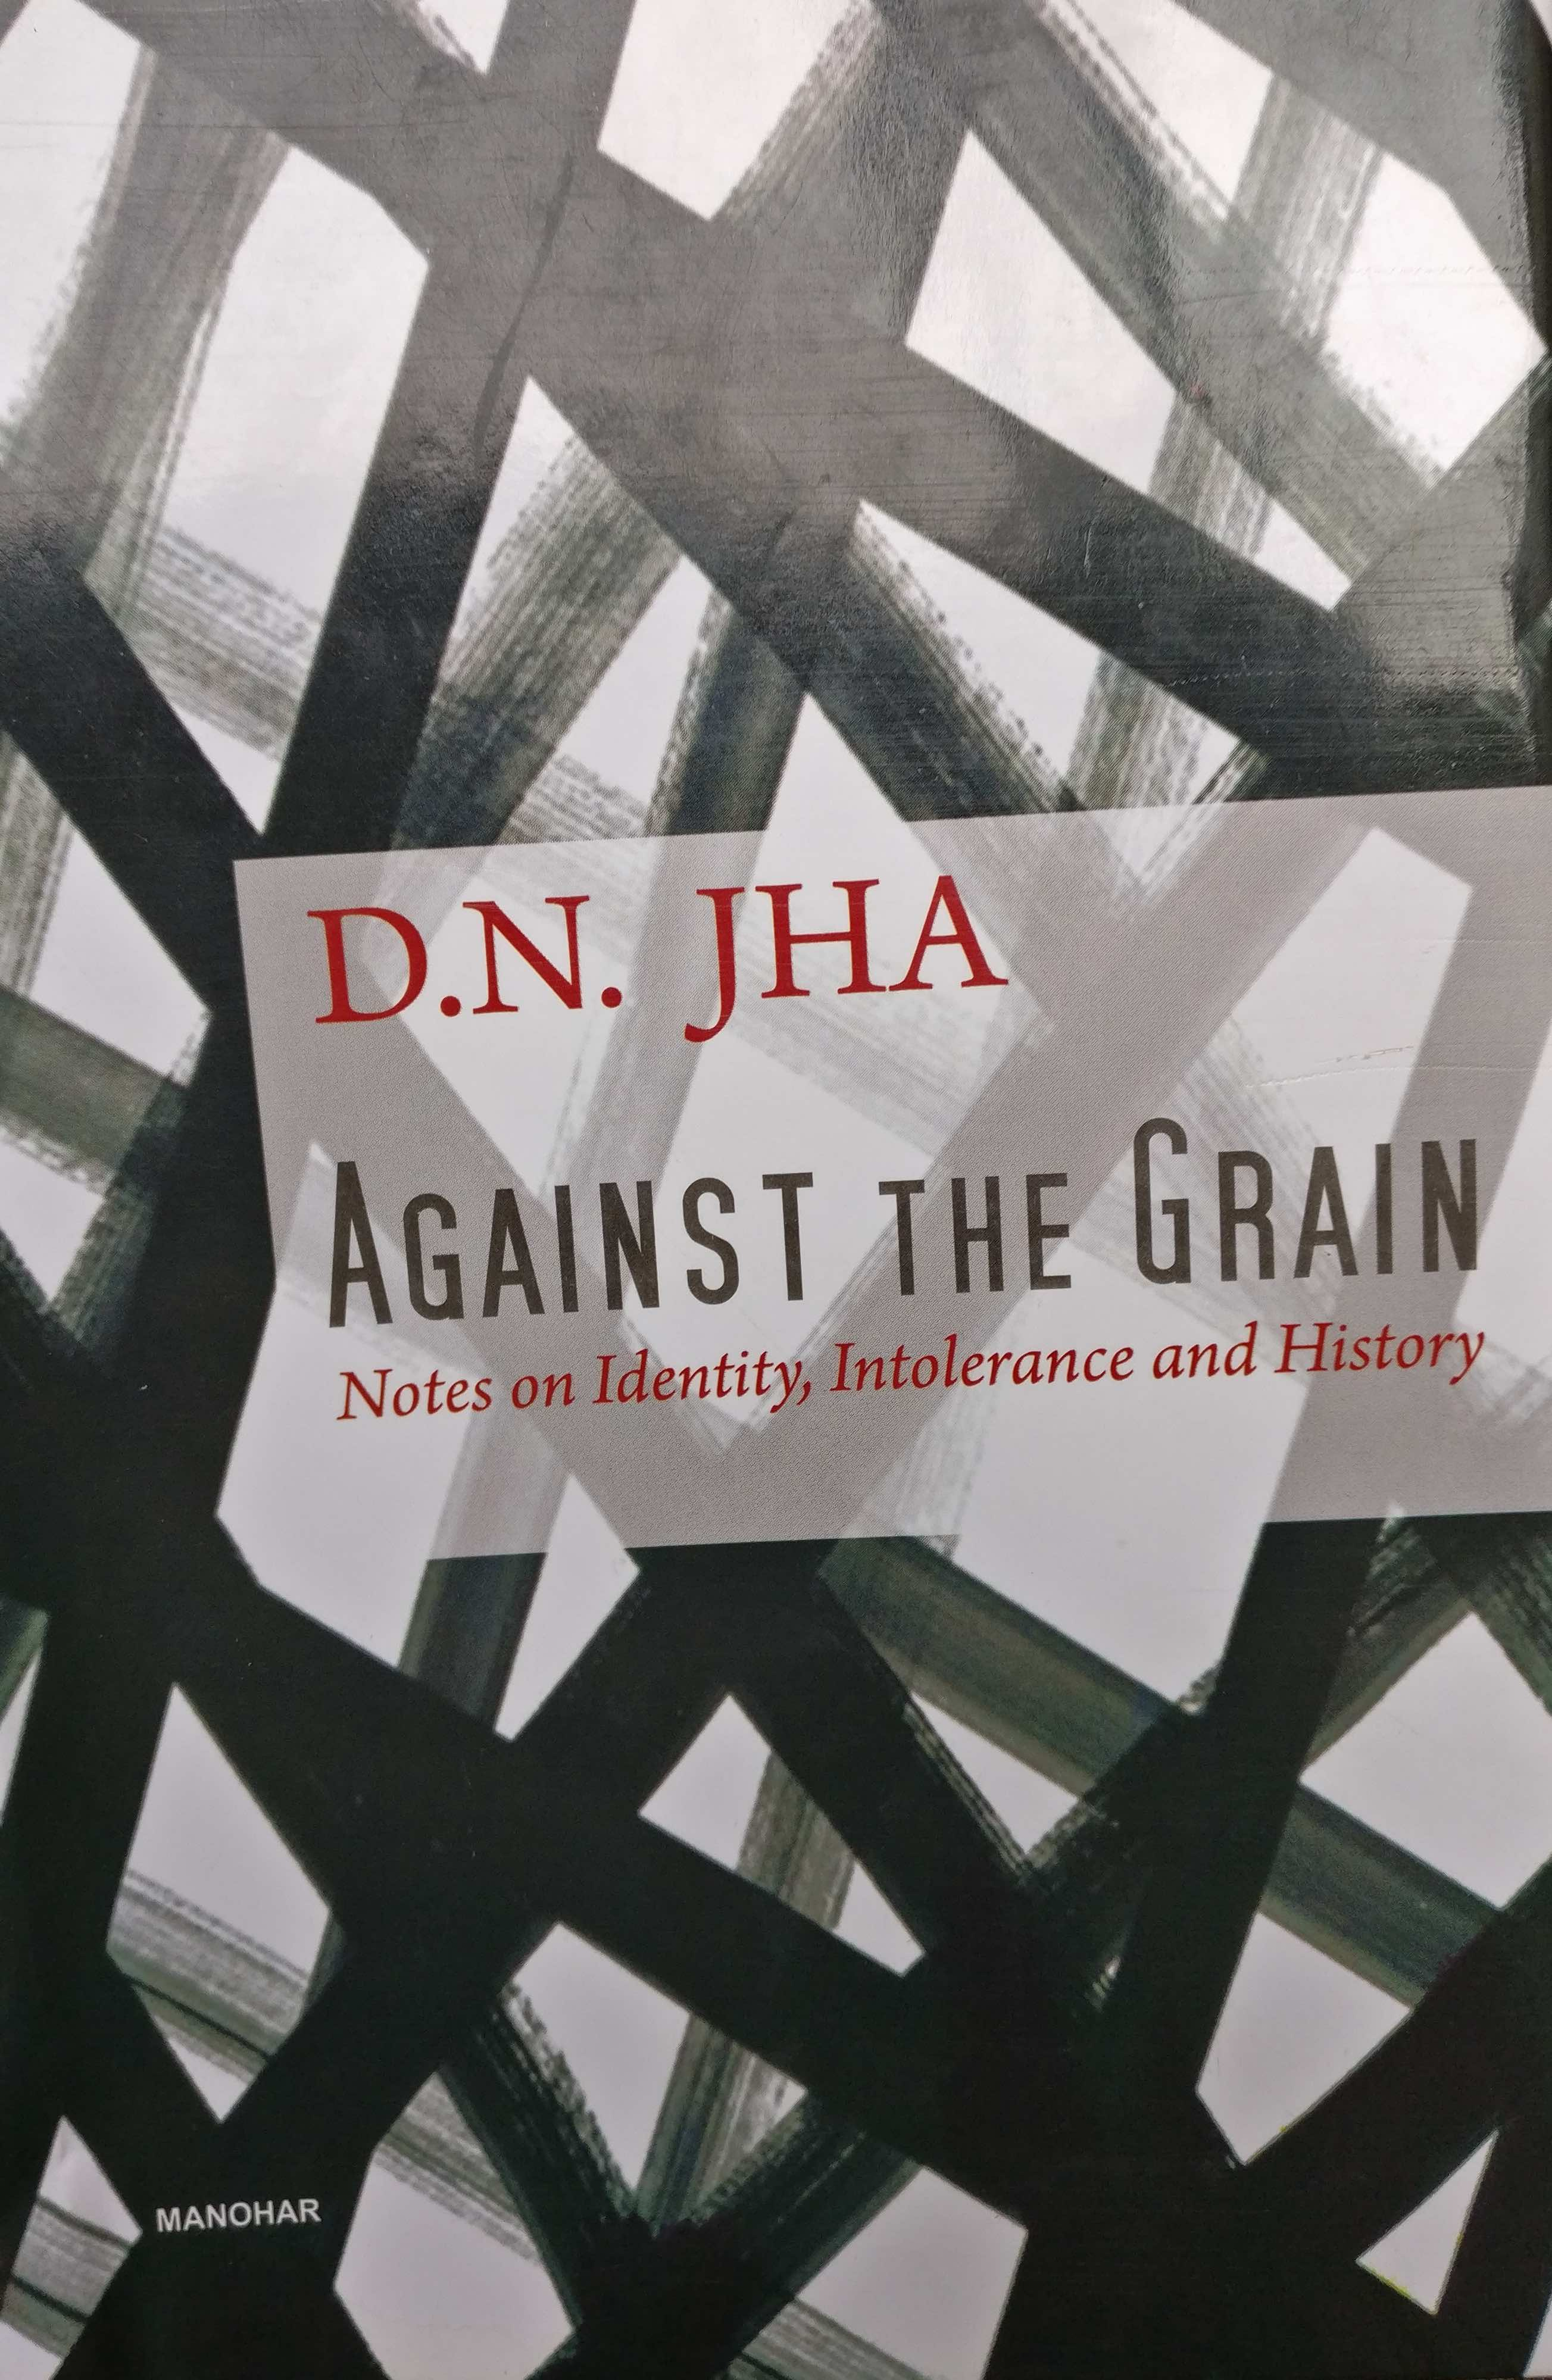 D.N. Jha <em>Against the Grain: Notes on Identity, Intolerance and History</em> Manohar, 2018